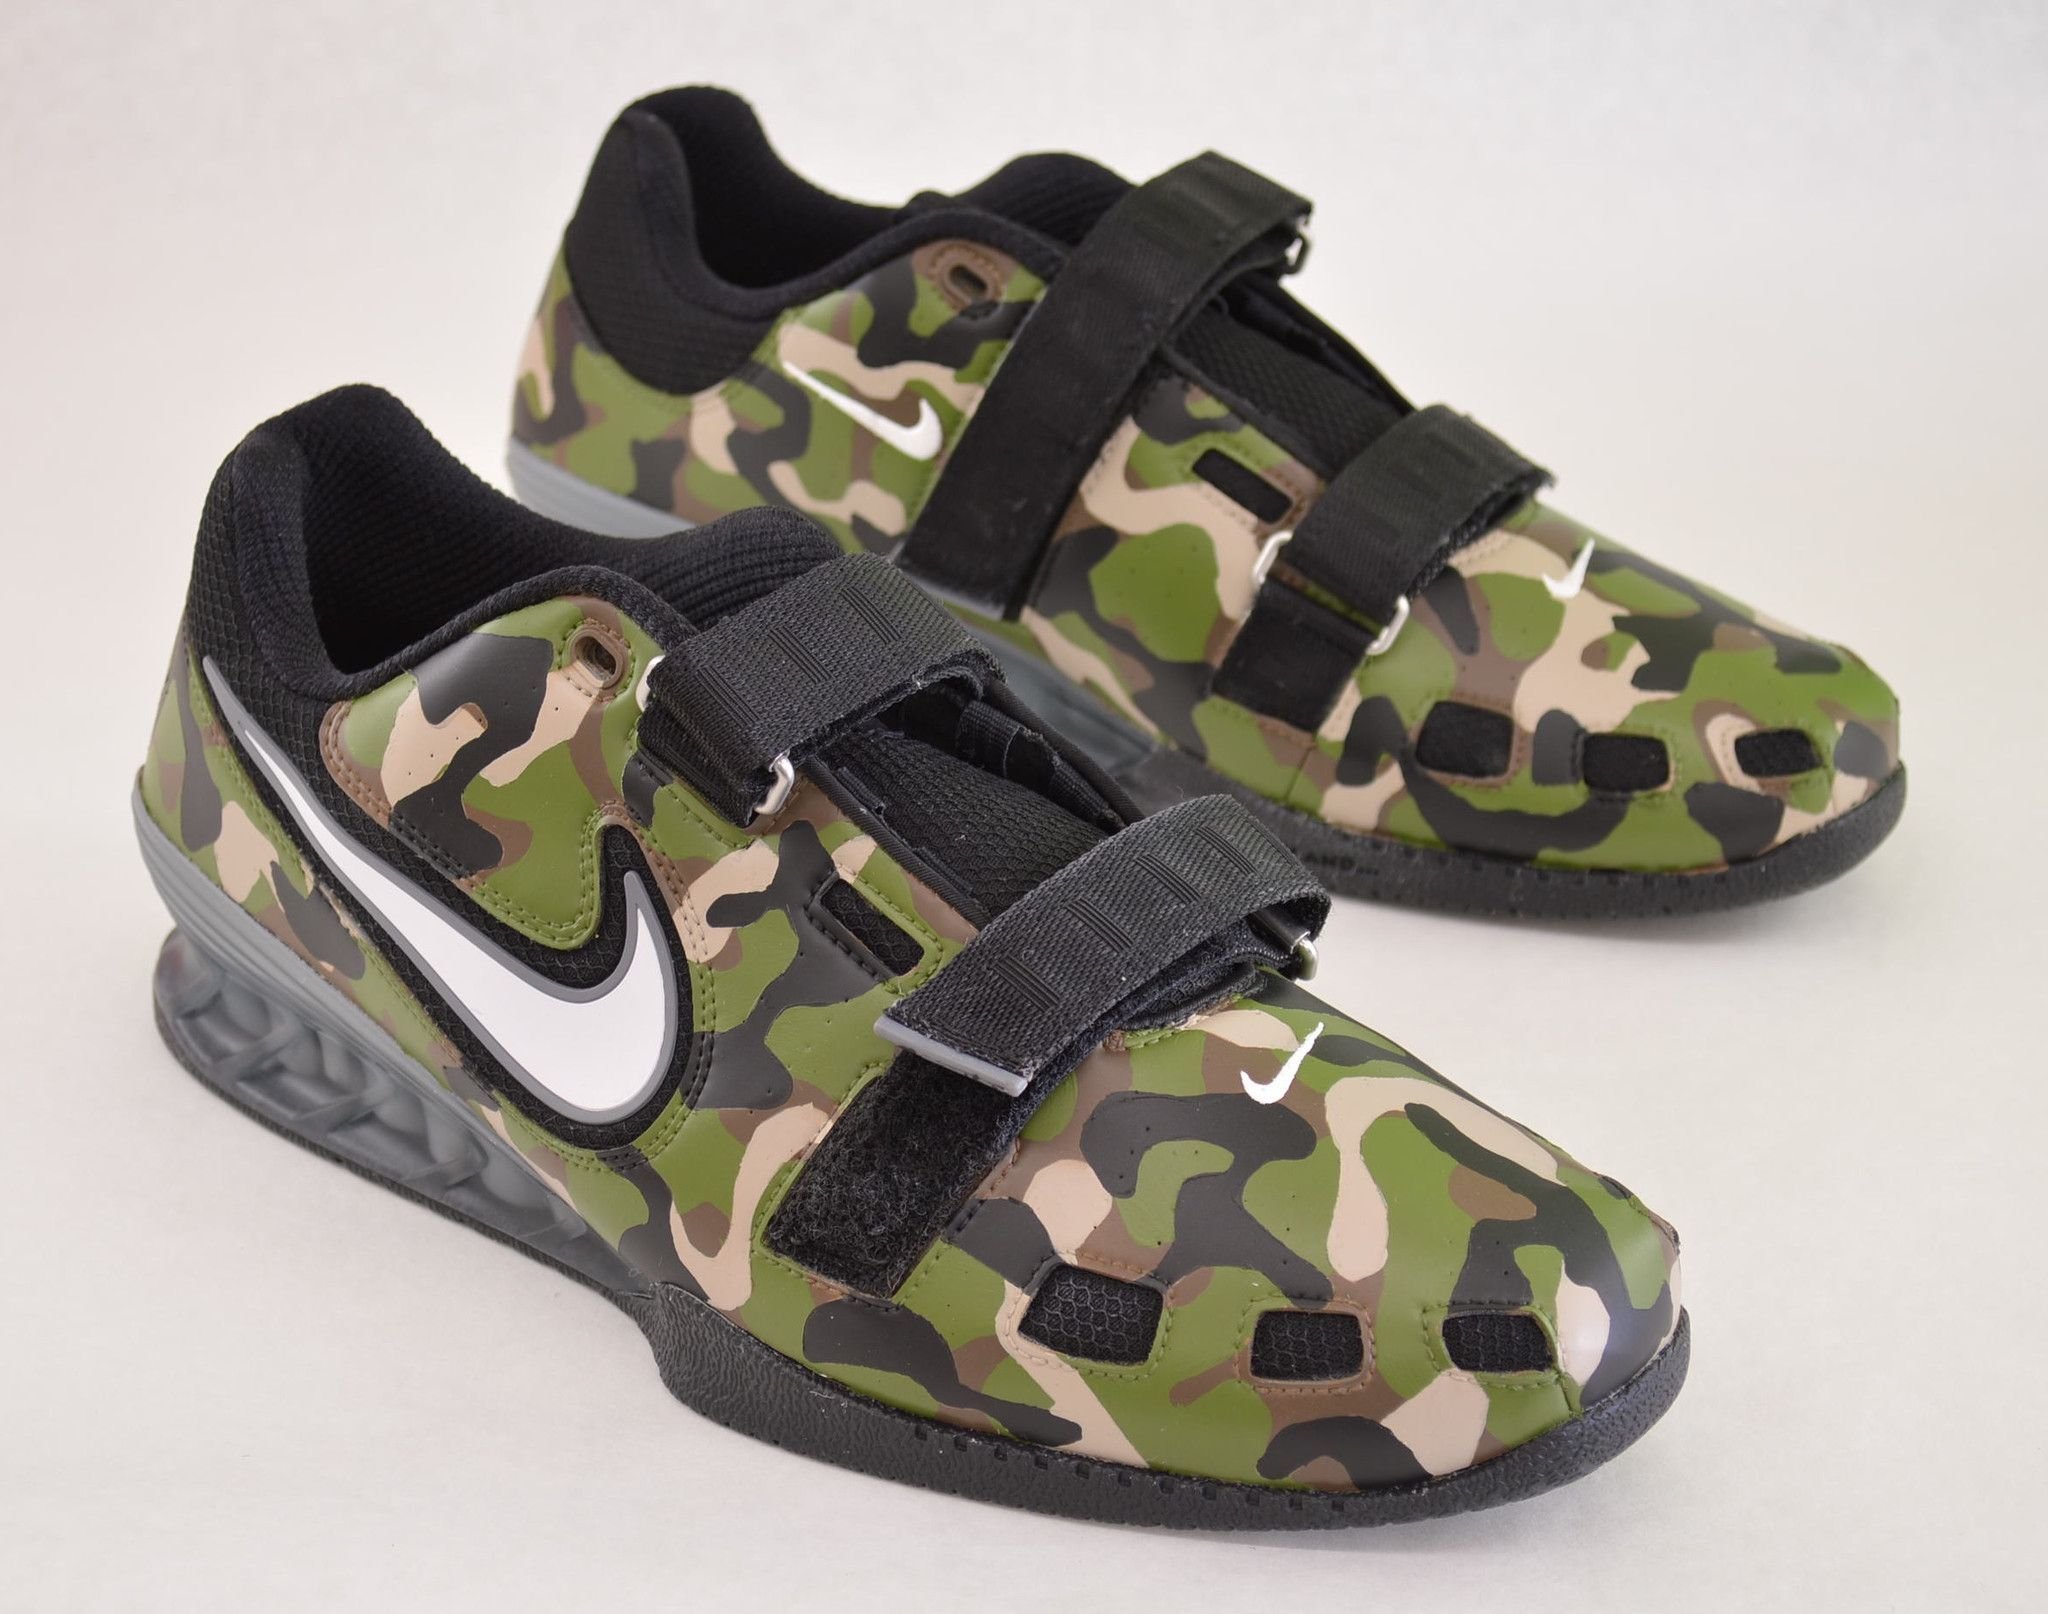 Custom Hand Painted Nike Romaleos 2  Camo Weightlifting Shoes